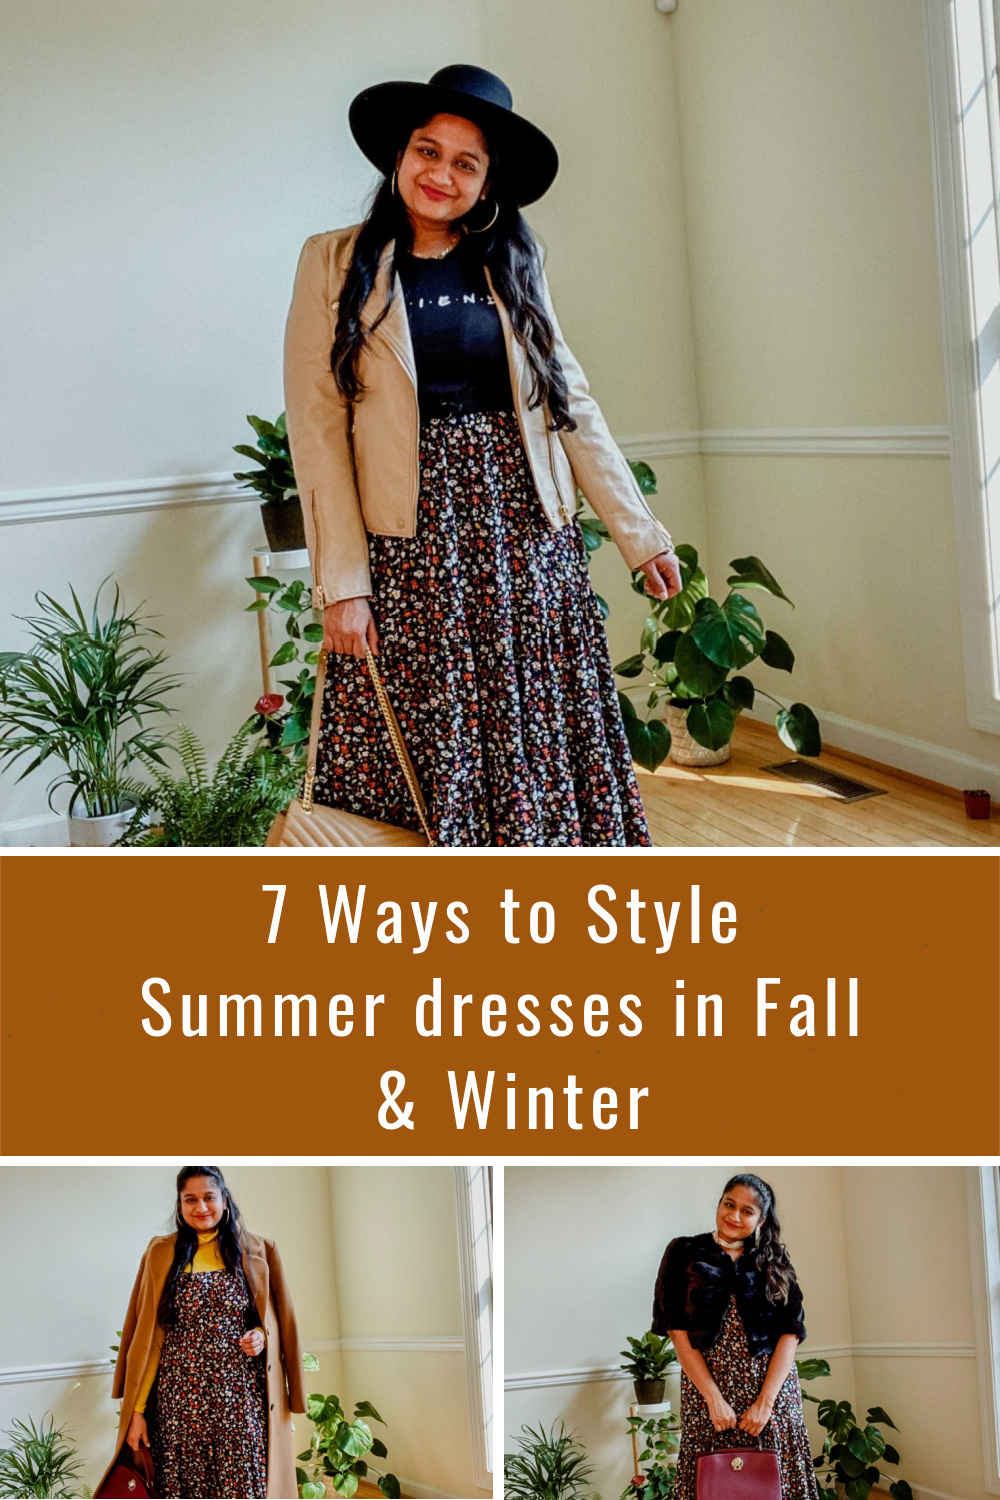 7 Ways to Style Summer dresses in Fall & Winter 2